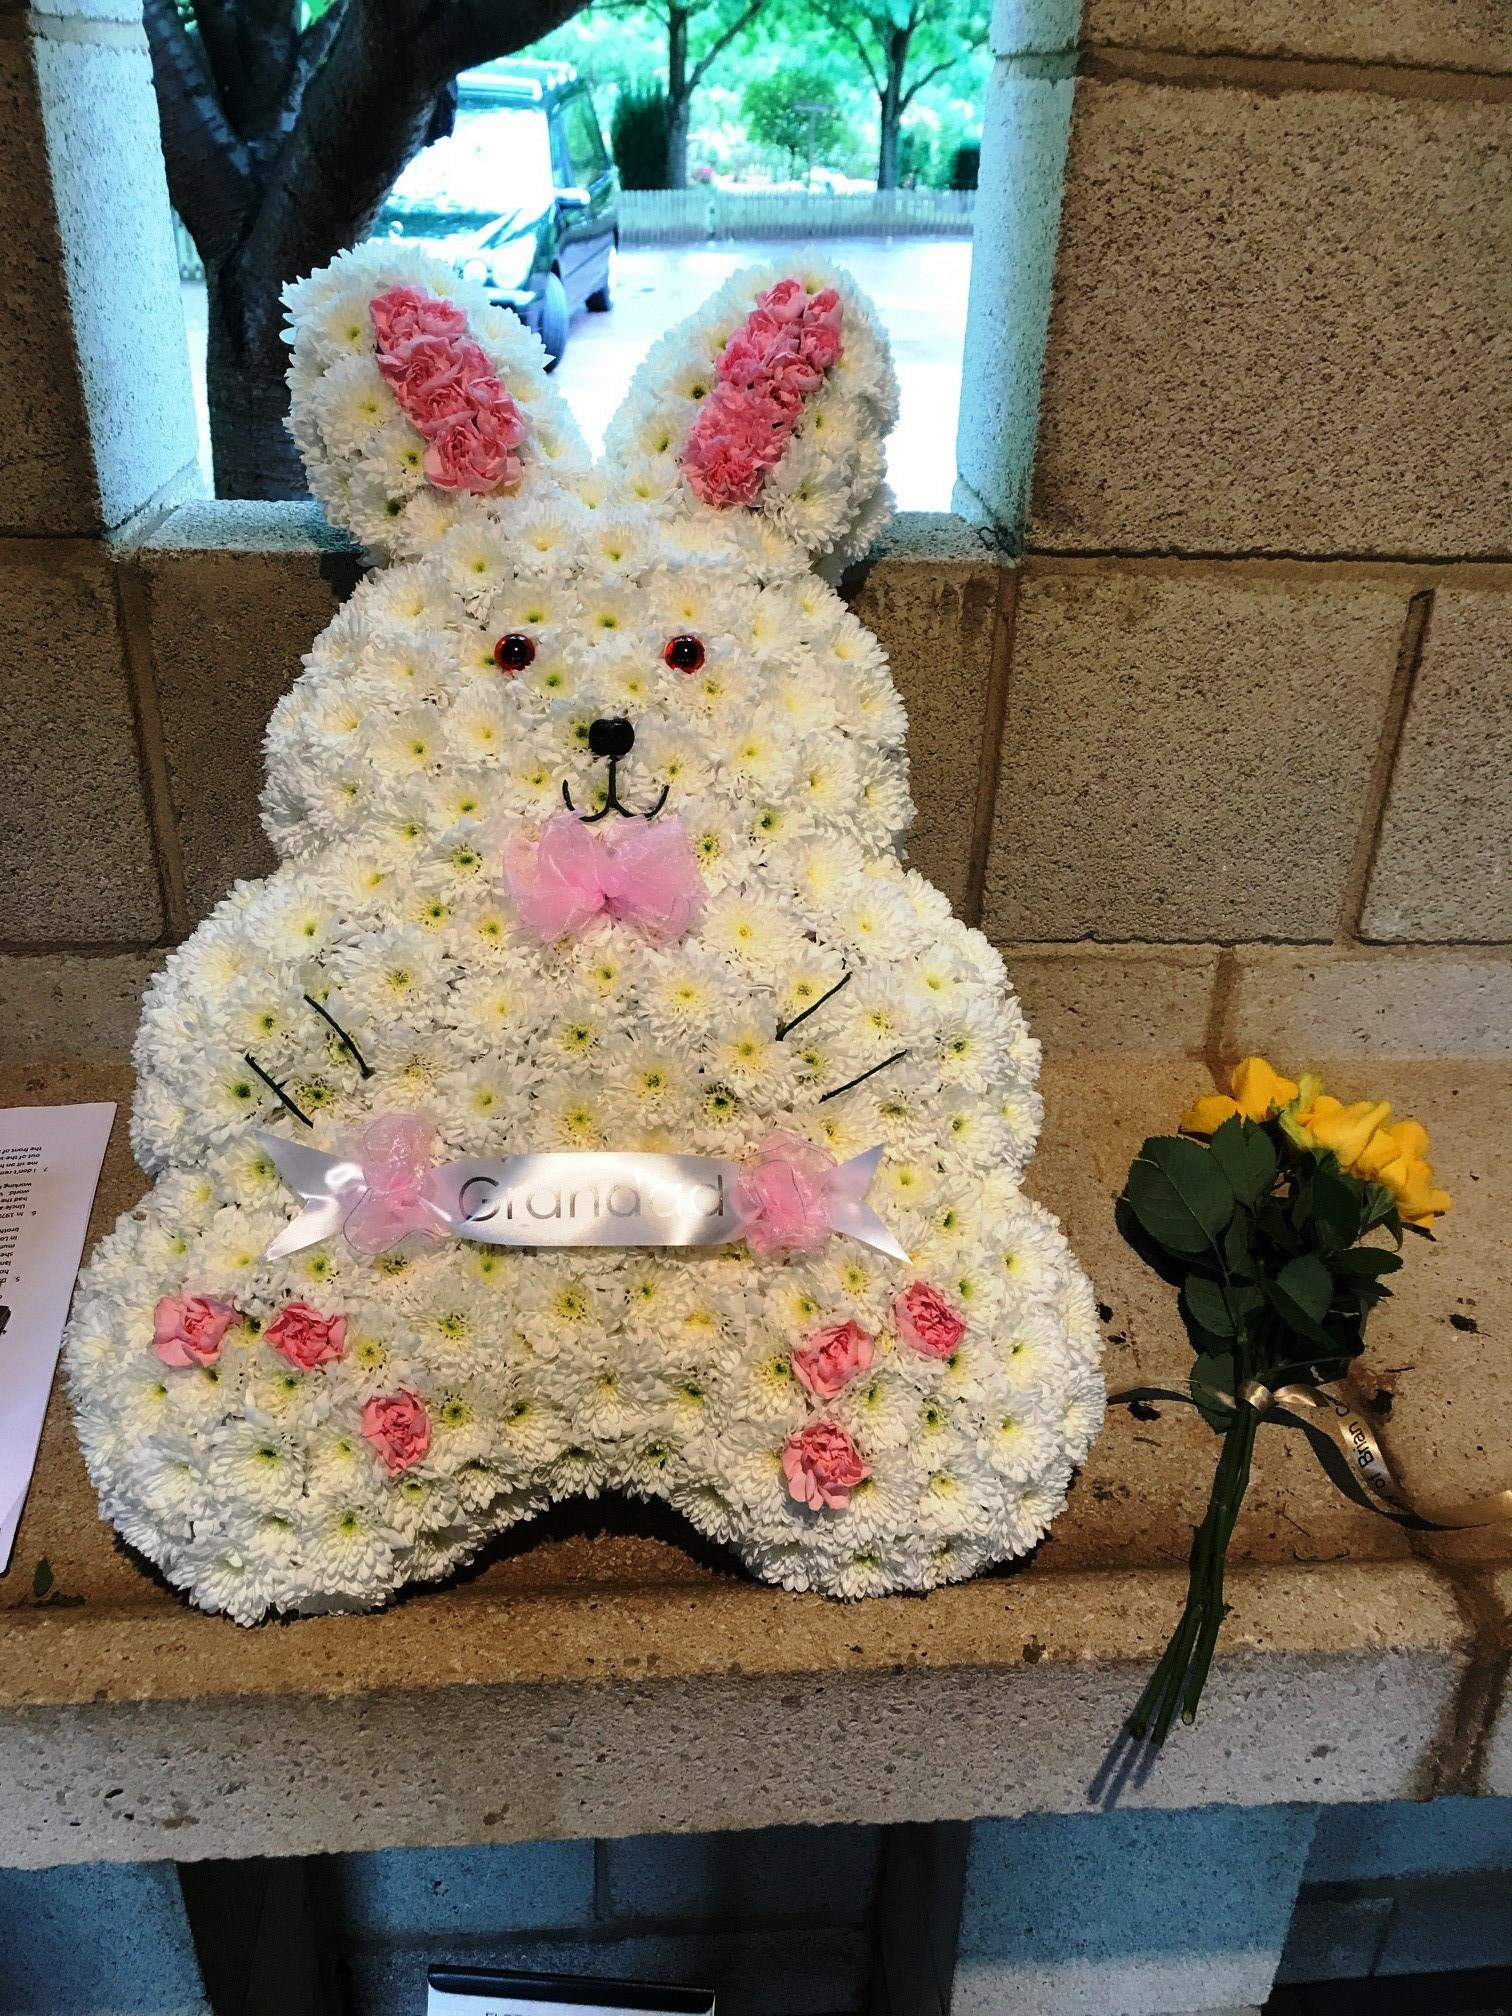 Floral tribute for Brian Collins